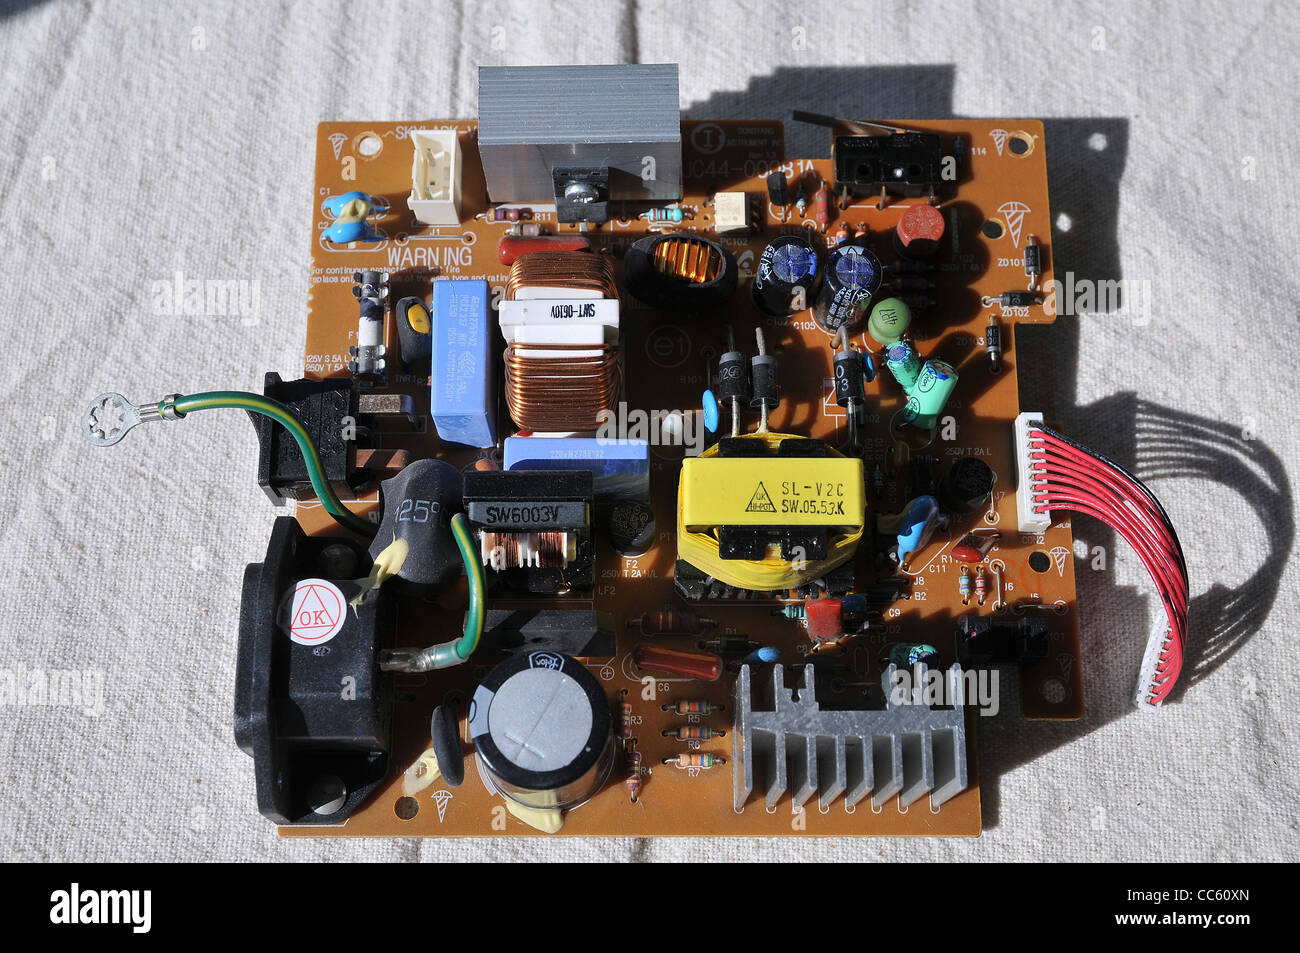 Close Up Of An Electronic Circuit Board Waste From Old Picture Computers Is A Major Concern To Ecologists Around The World